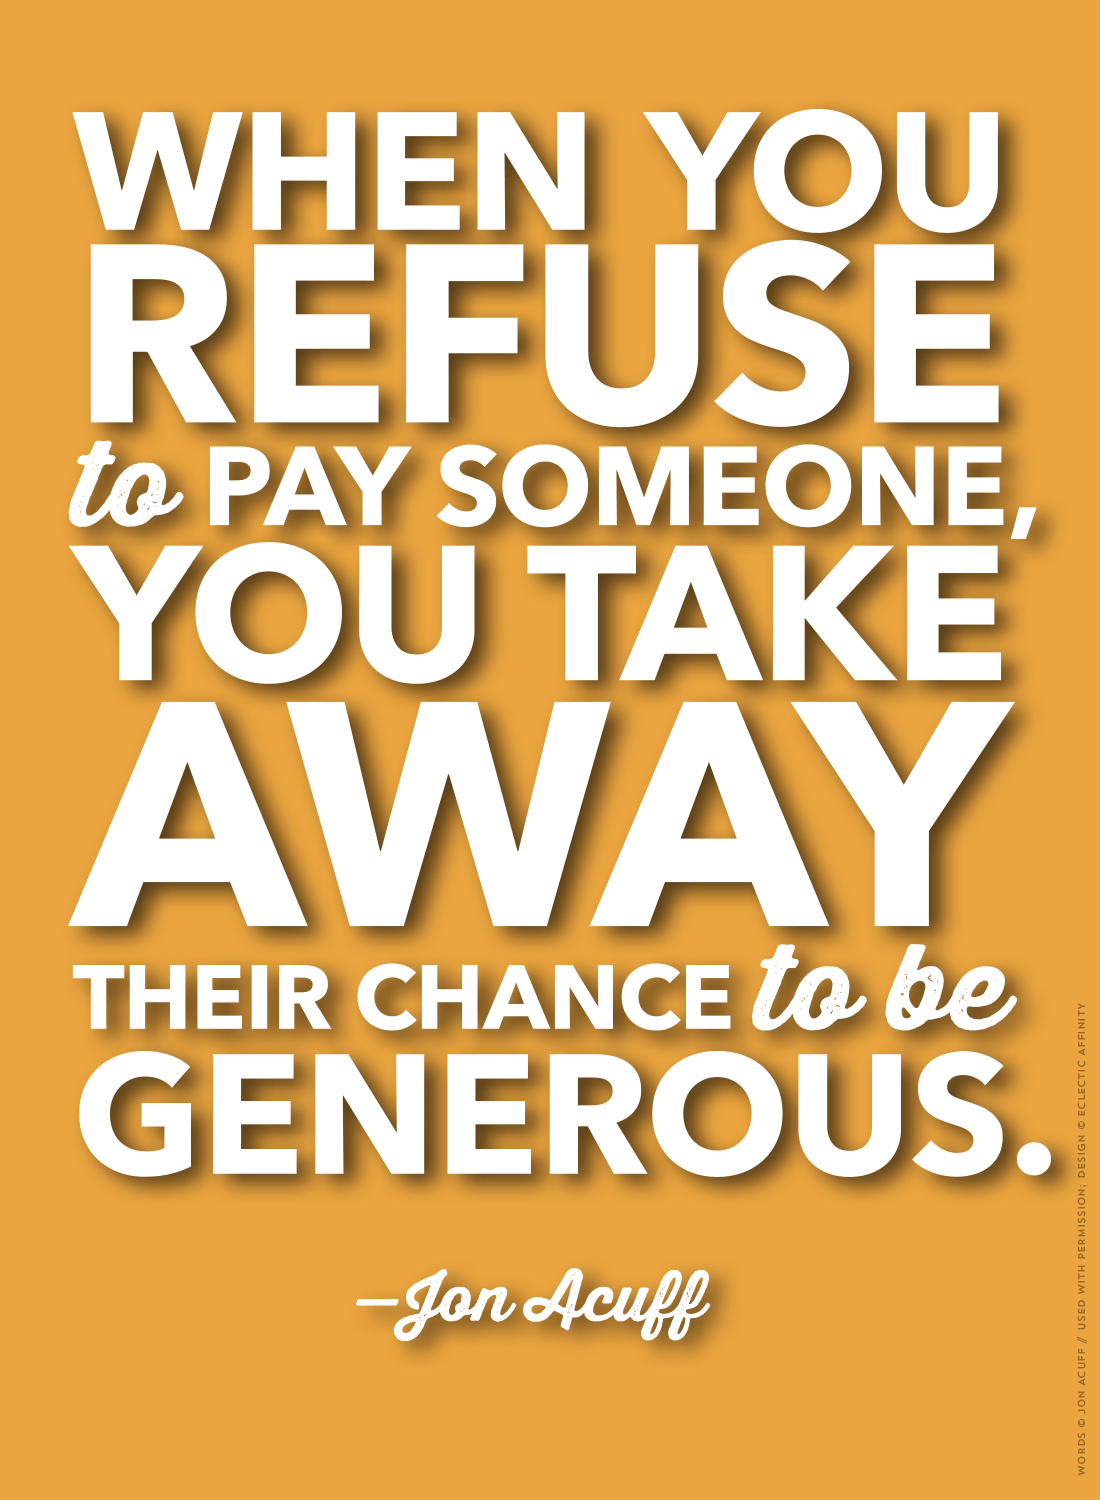 When you refuse to pay someone, you take away their chance to be generous. - Jon Acuff